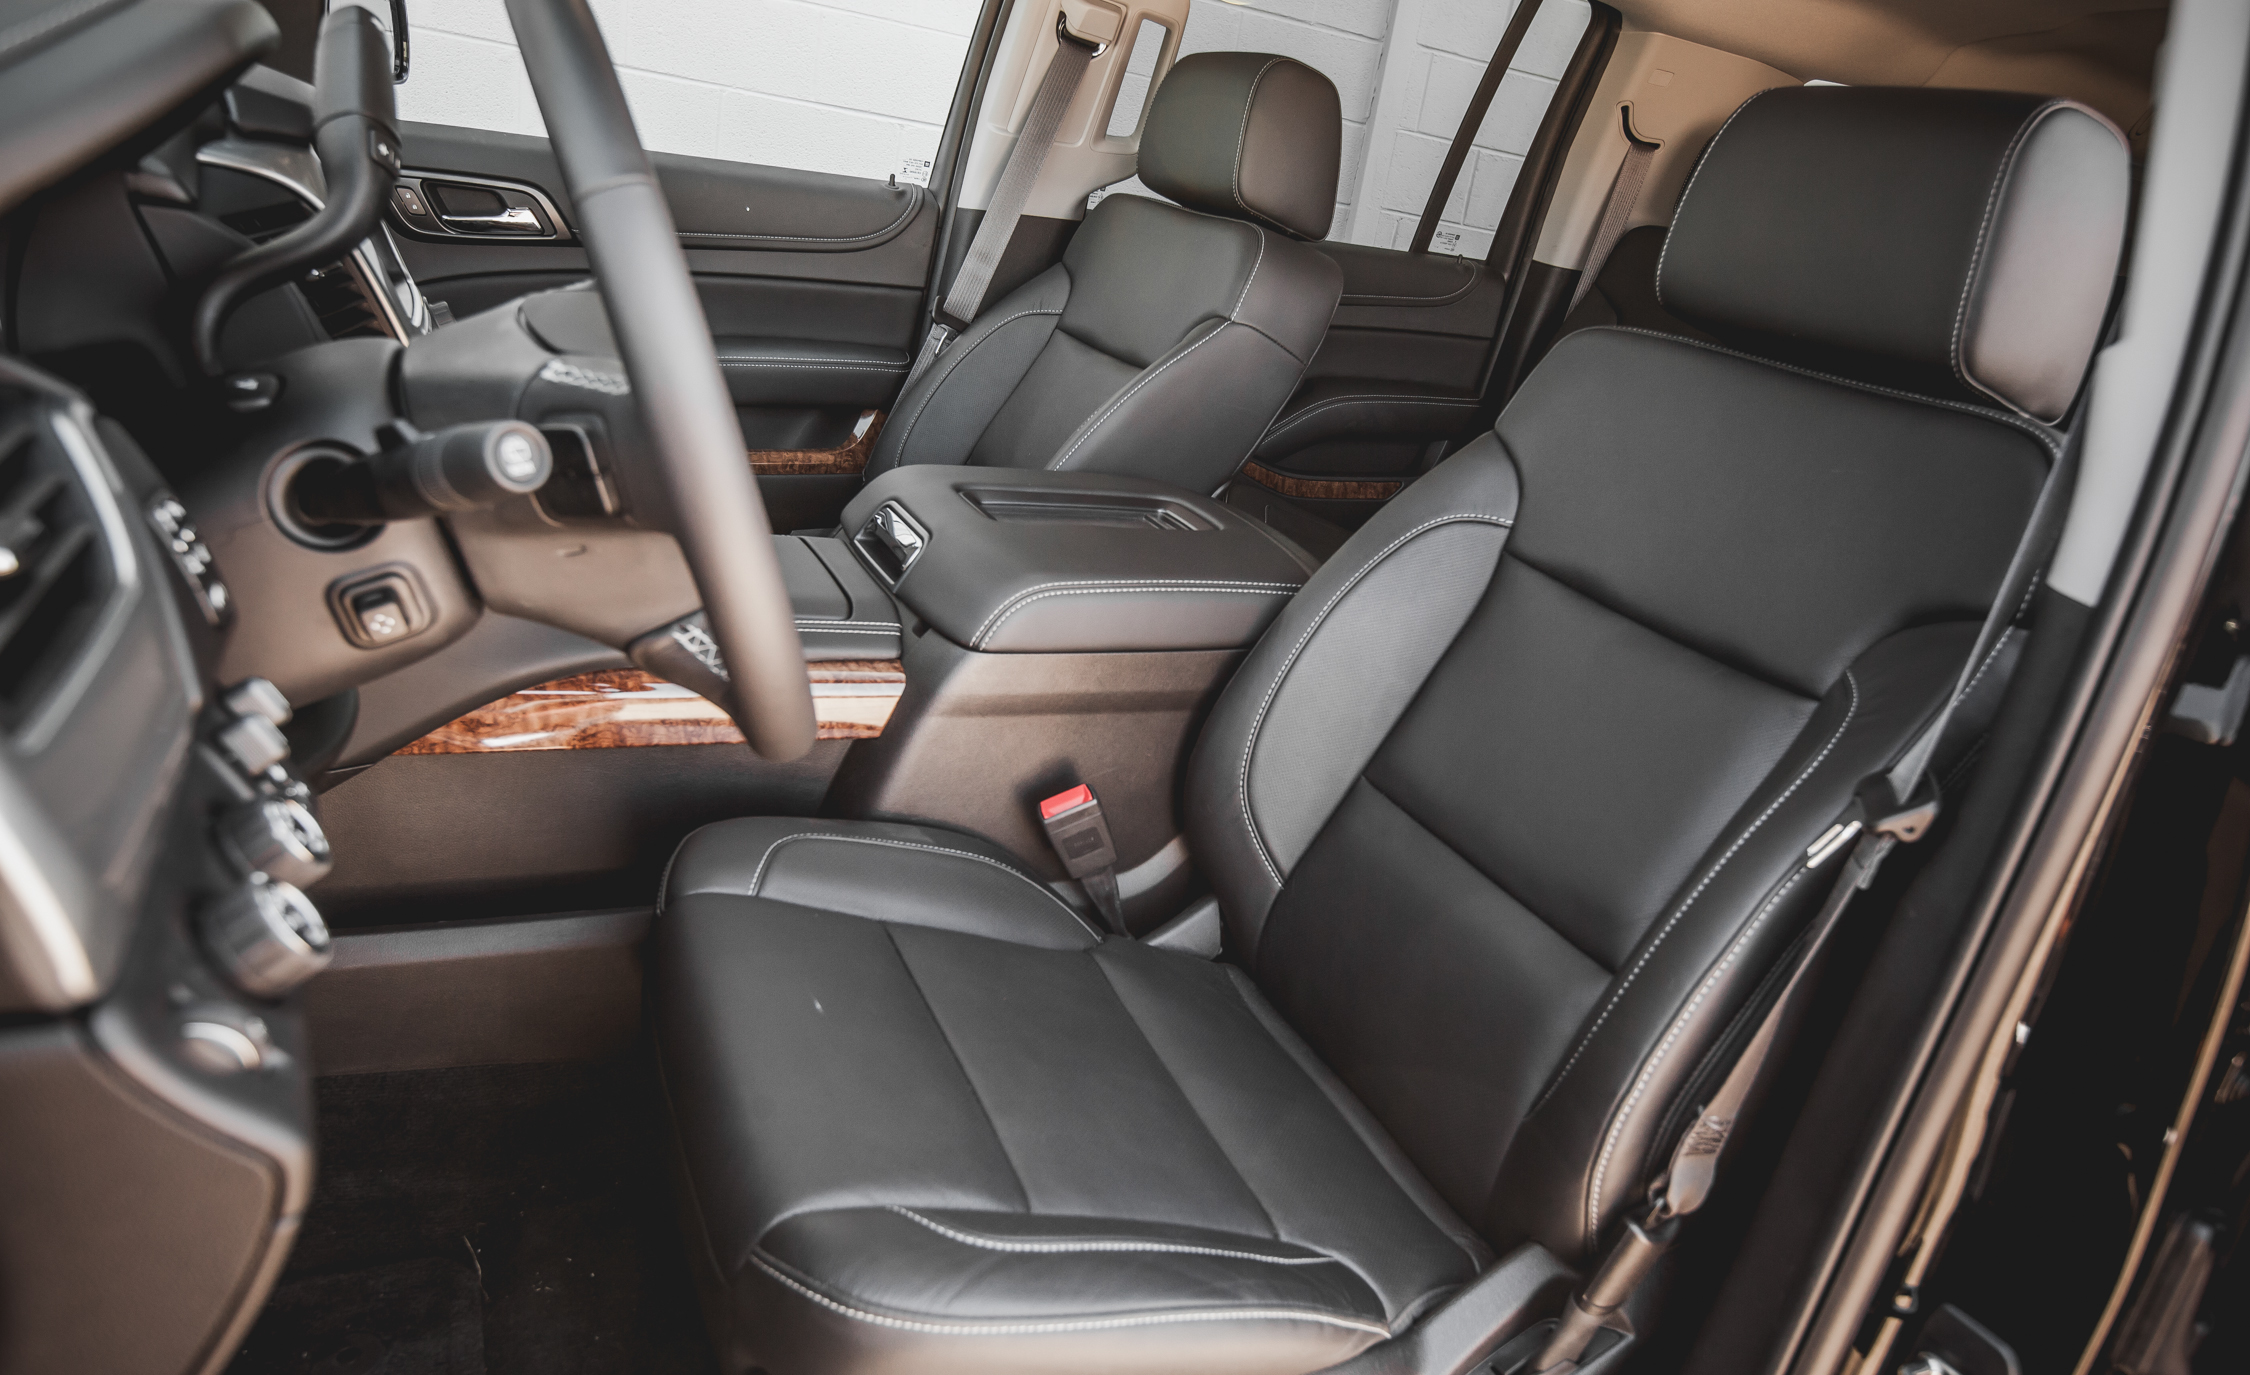 2015 Chevrolet Suburban LTZ Interior (Photo 20 of 33)